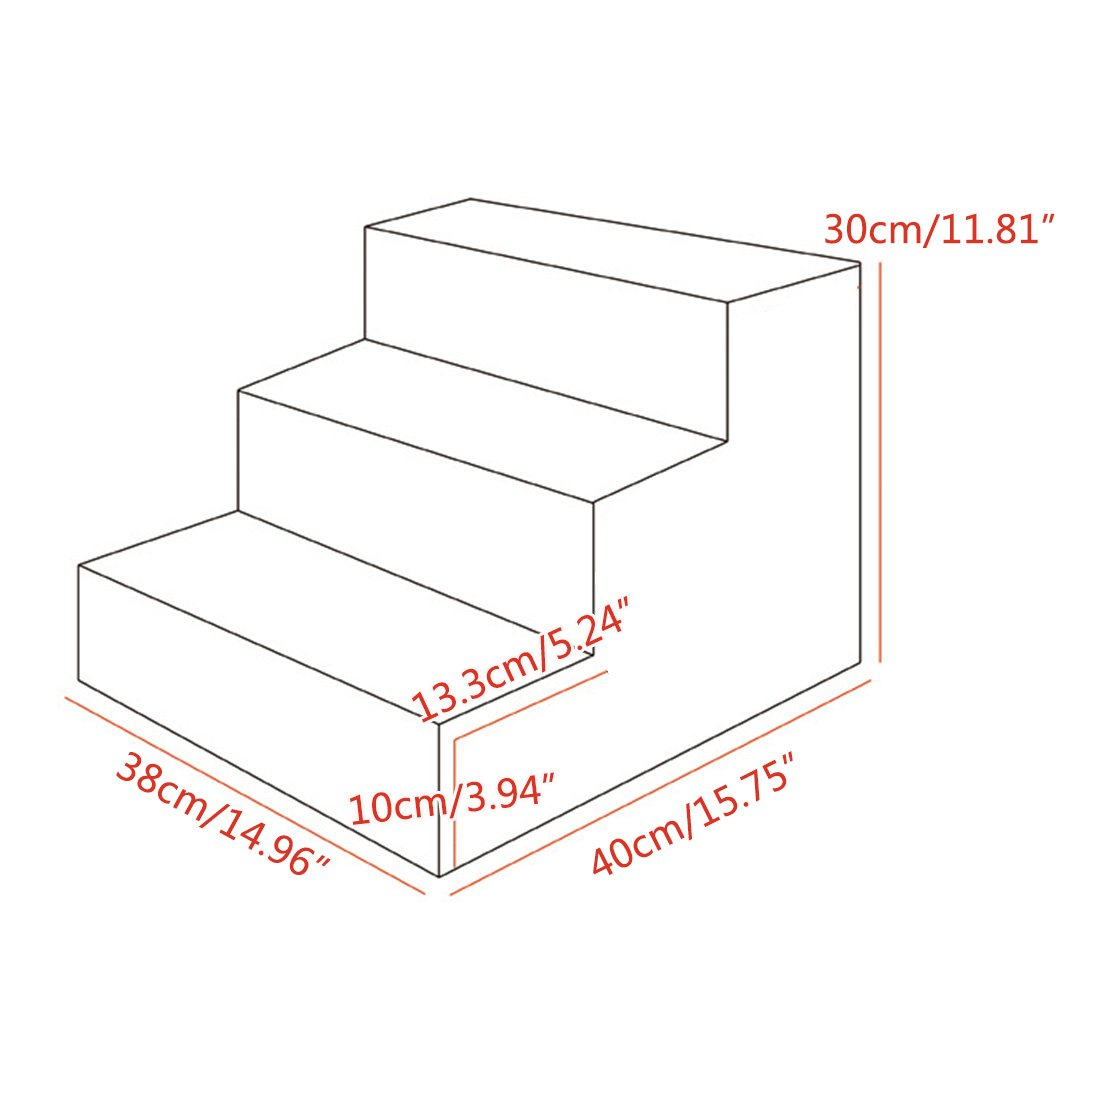 Bverionant 3 Steps Doggy Foam Pet Stairs Anti-Slip Ramp Waterproof Ladder for Small Dog Cat Coffee